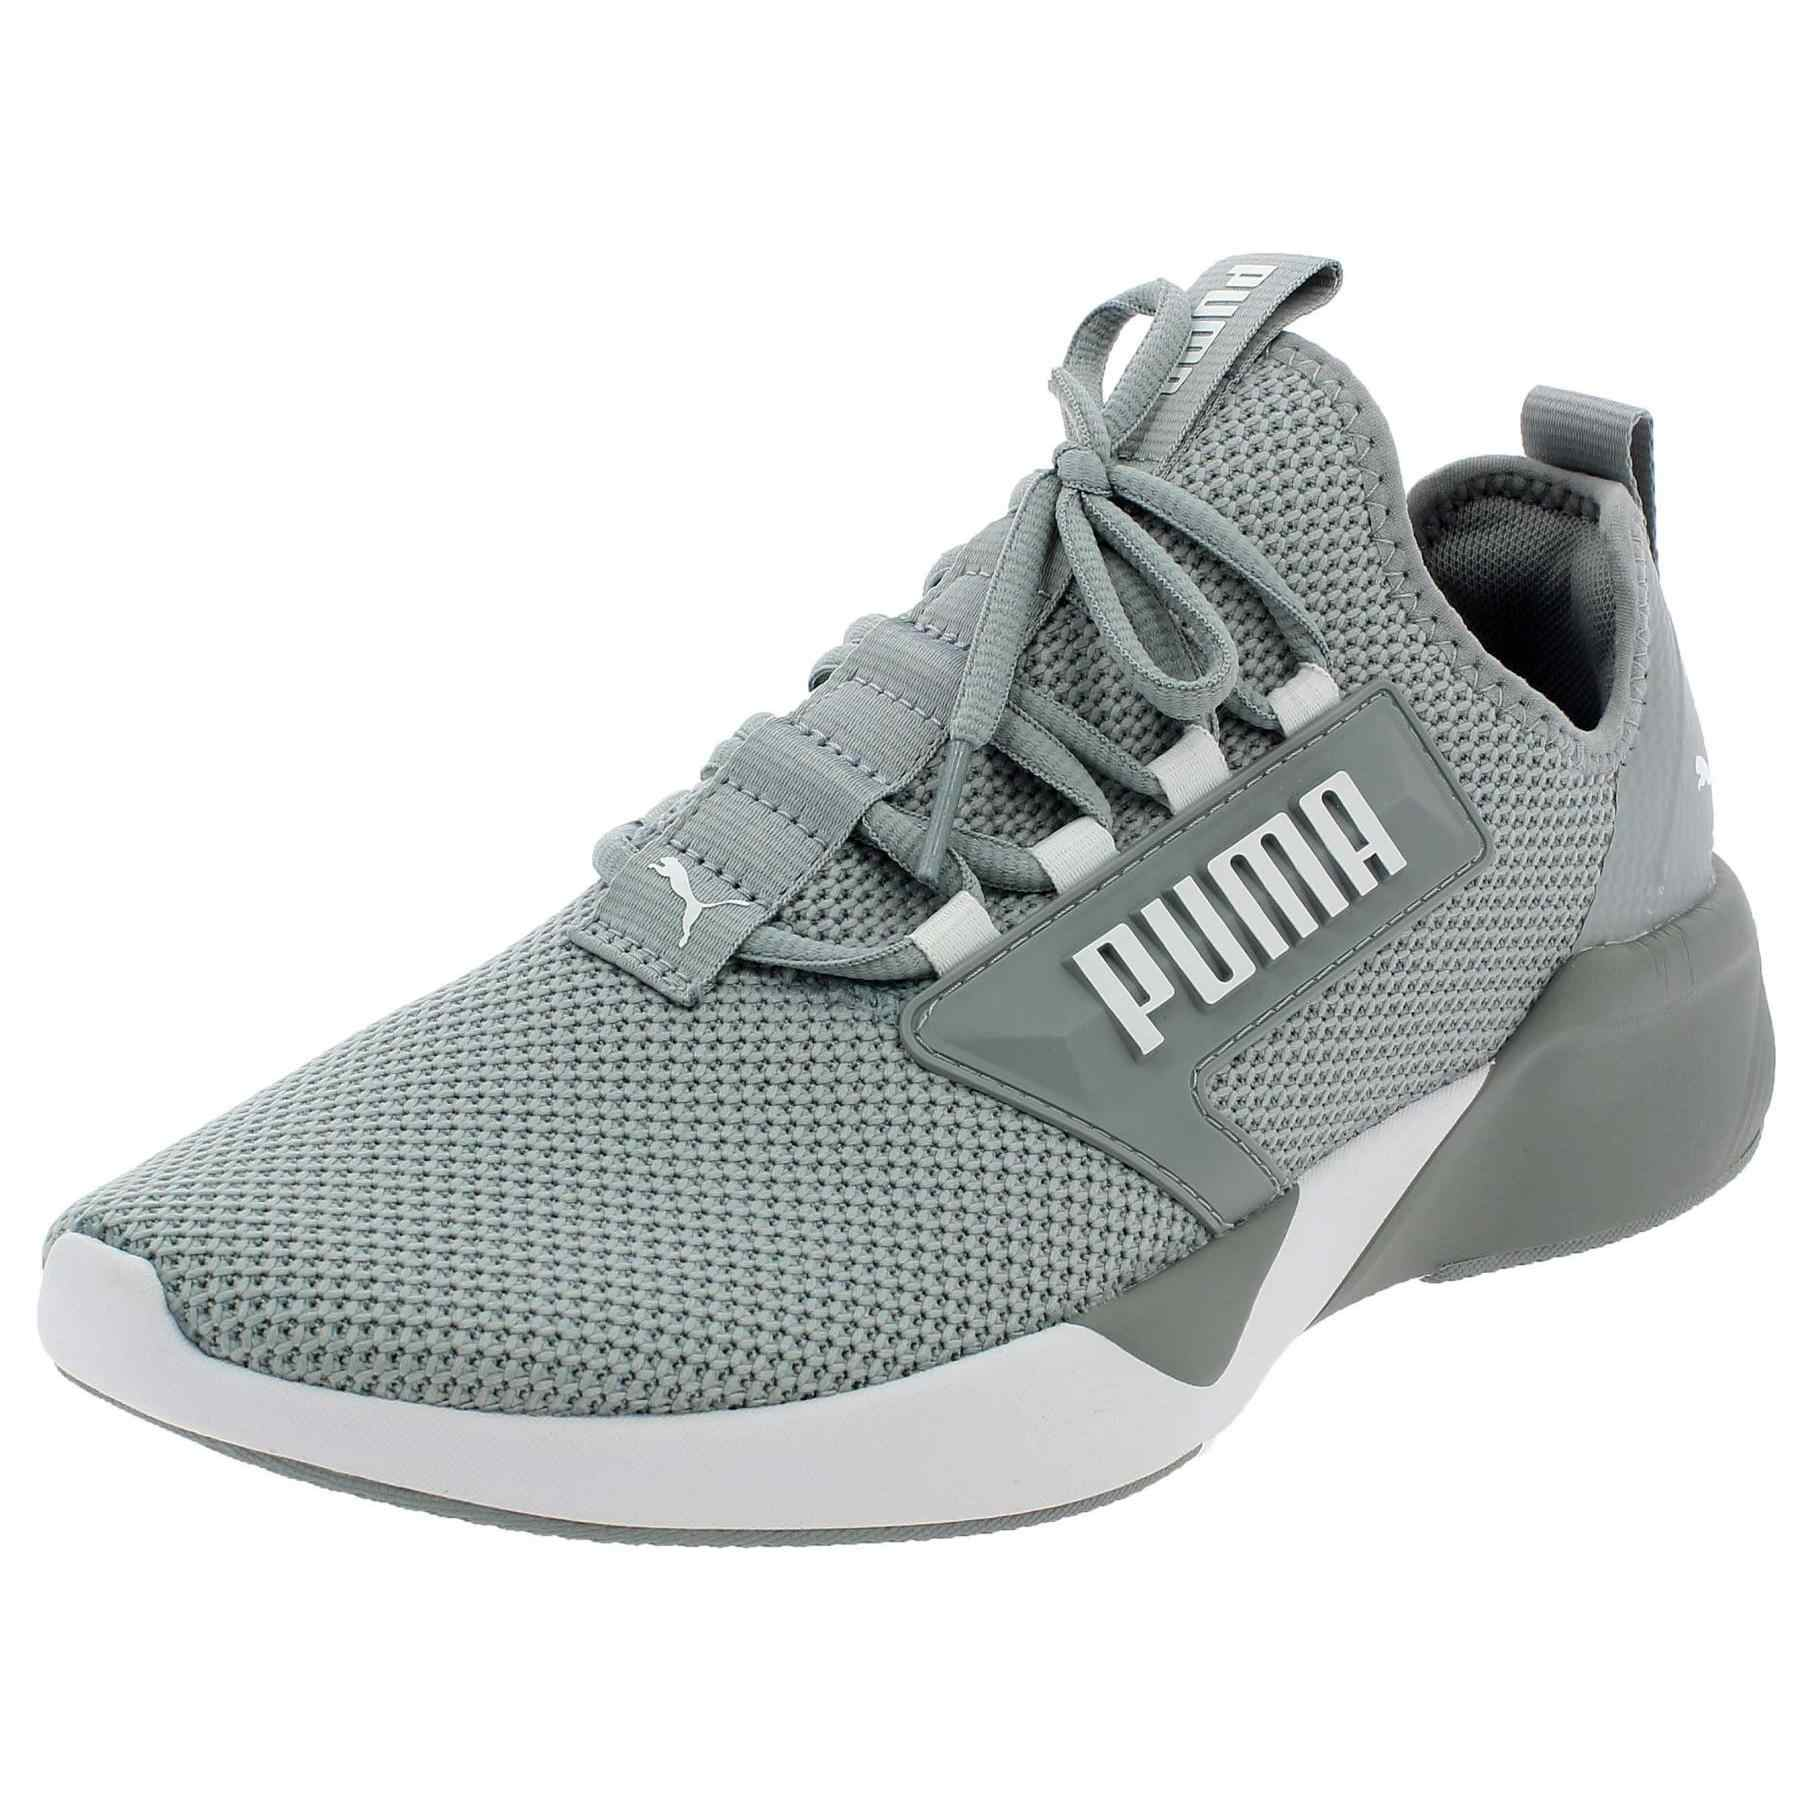 PUMA RETALIATE SPORT SHOES MAN'S GREY 19234004